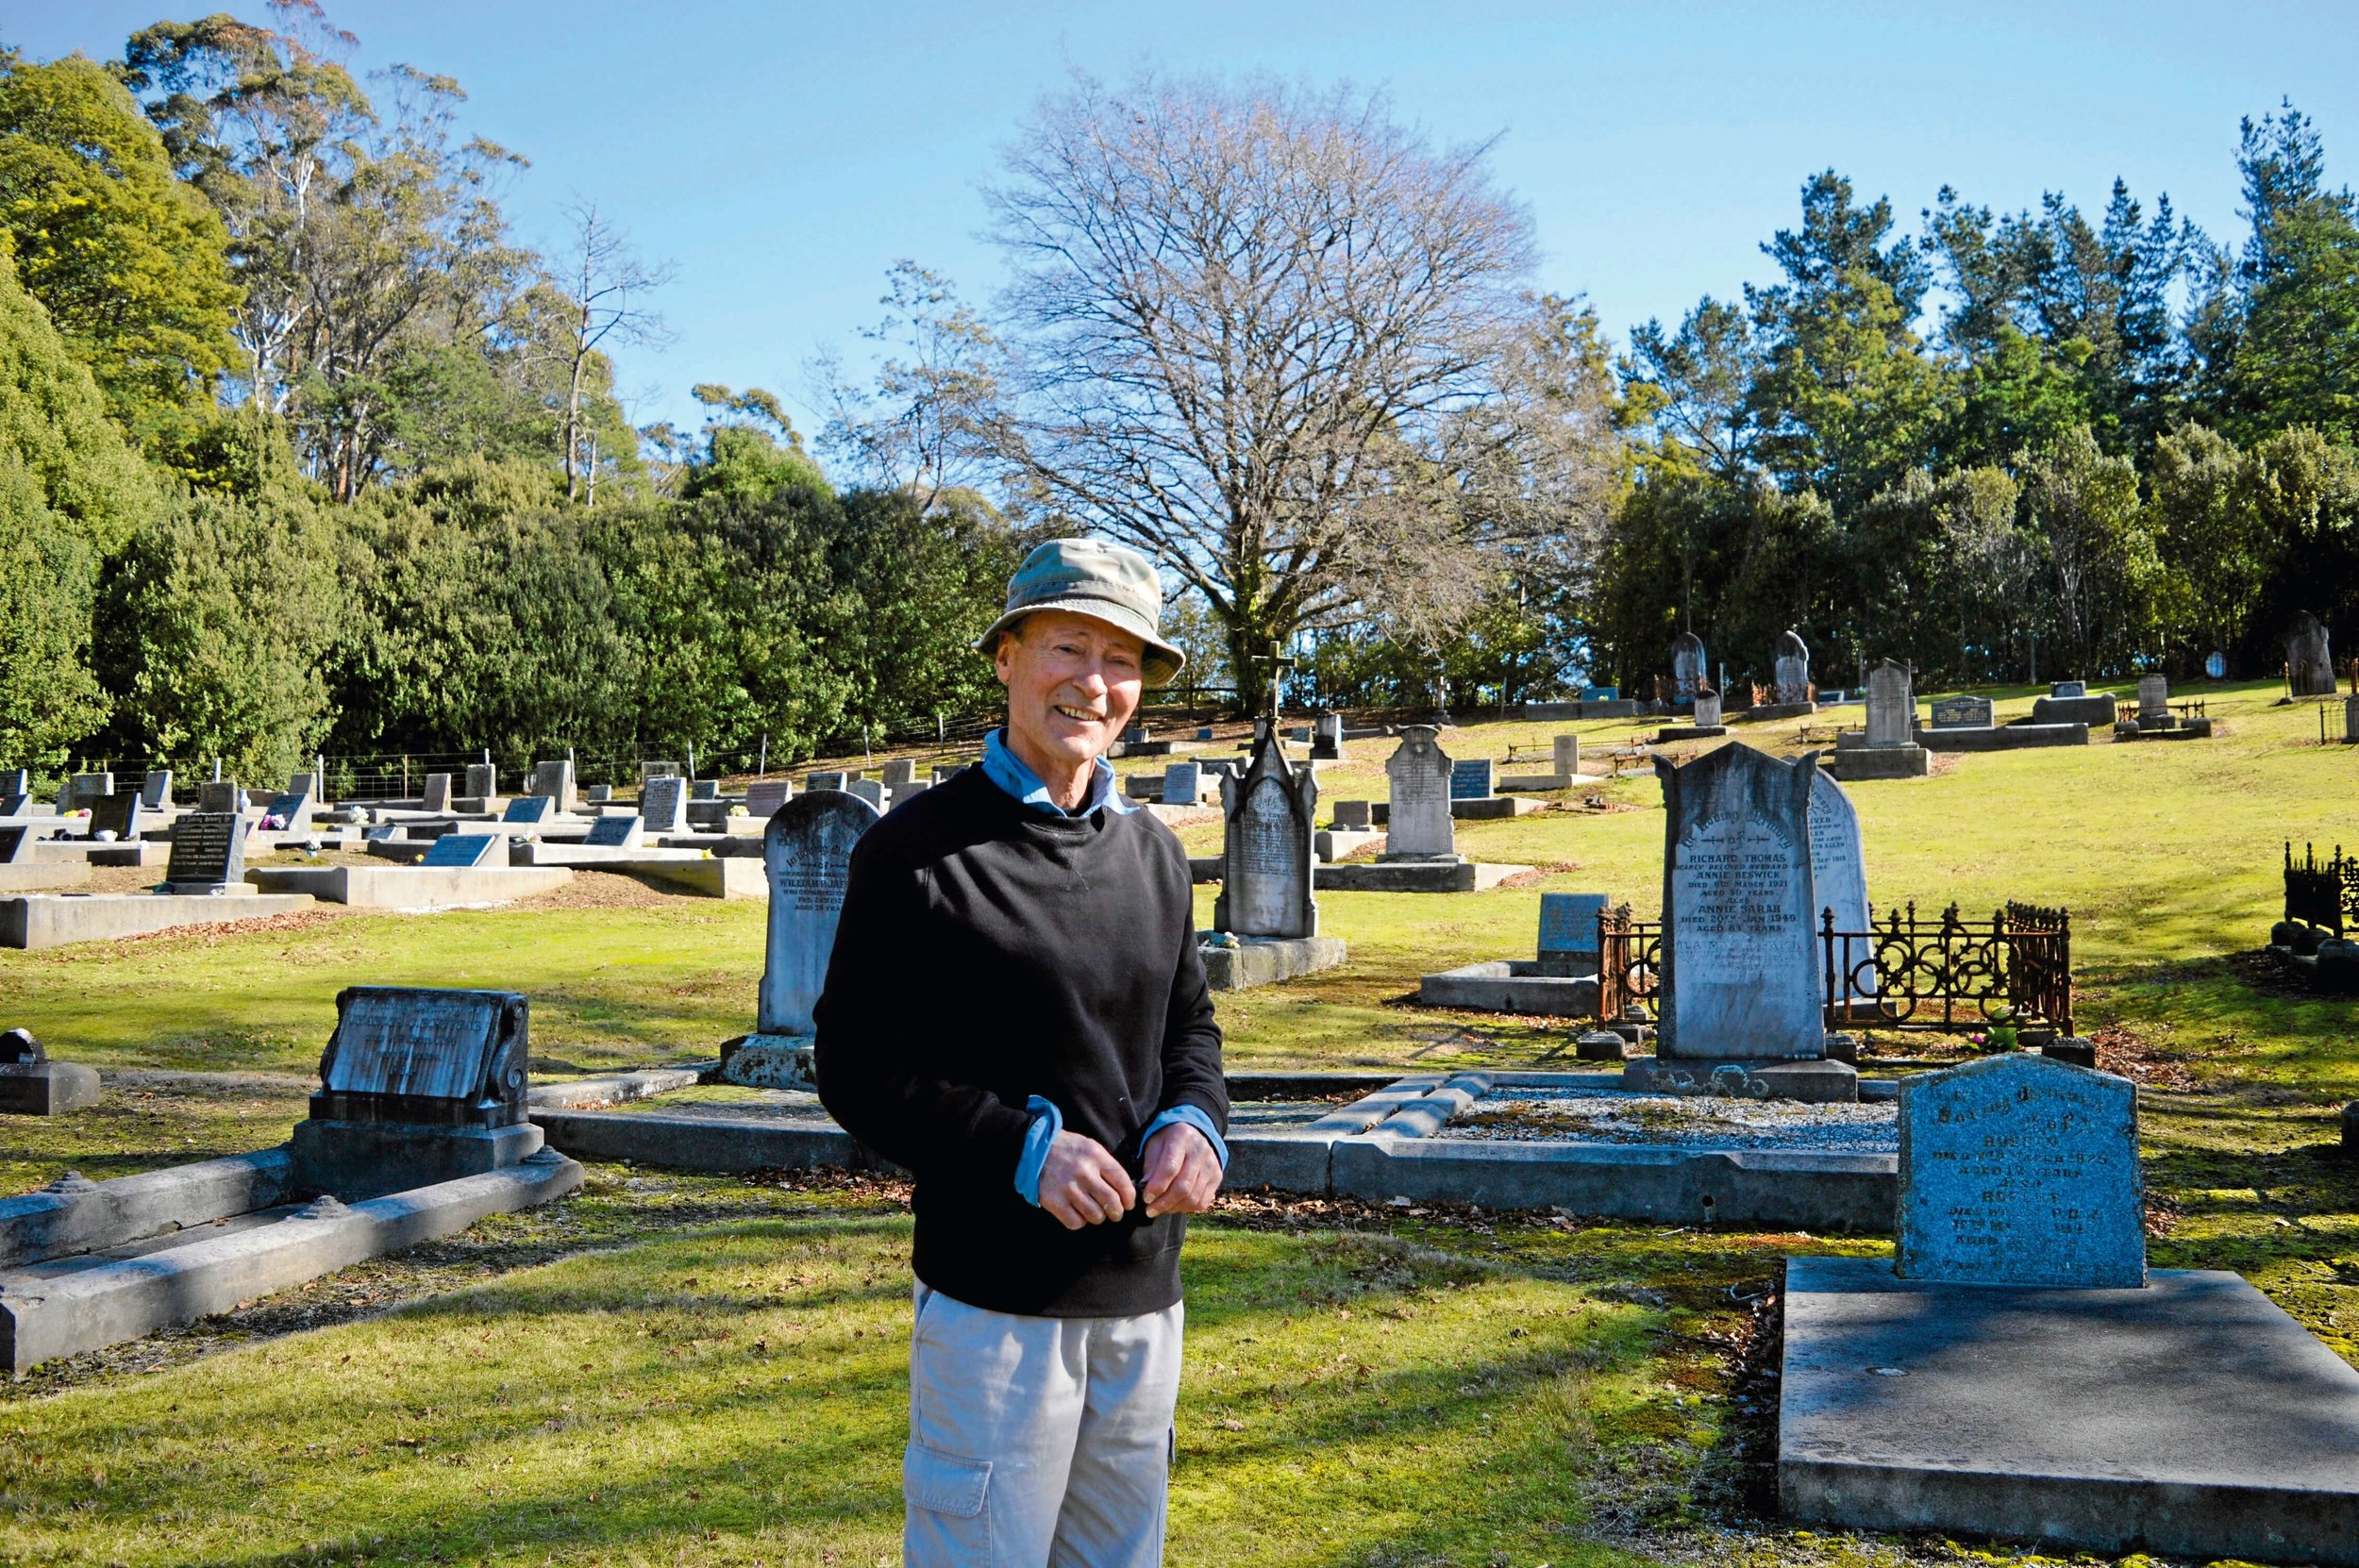 • Branxholm resident Trevor Smith has spent the last 14 years researching the burial history of the Branxholm and Moorina cemeteries.